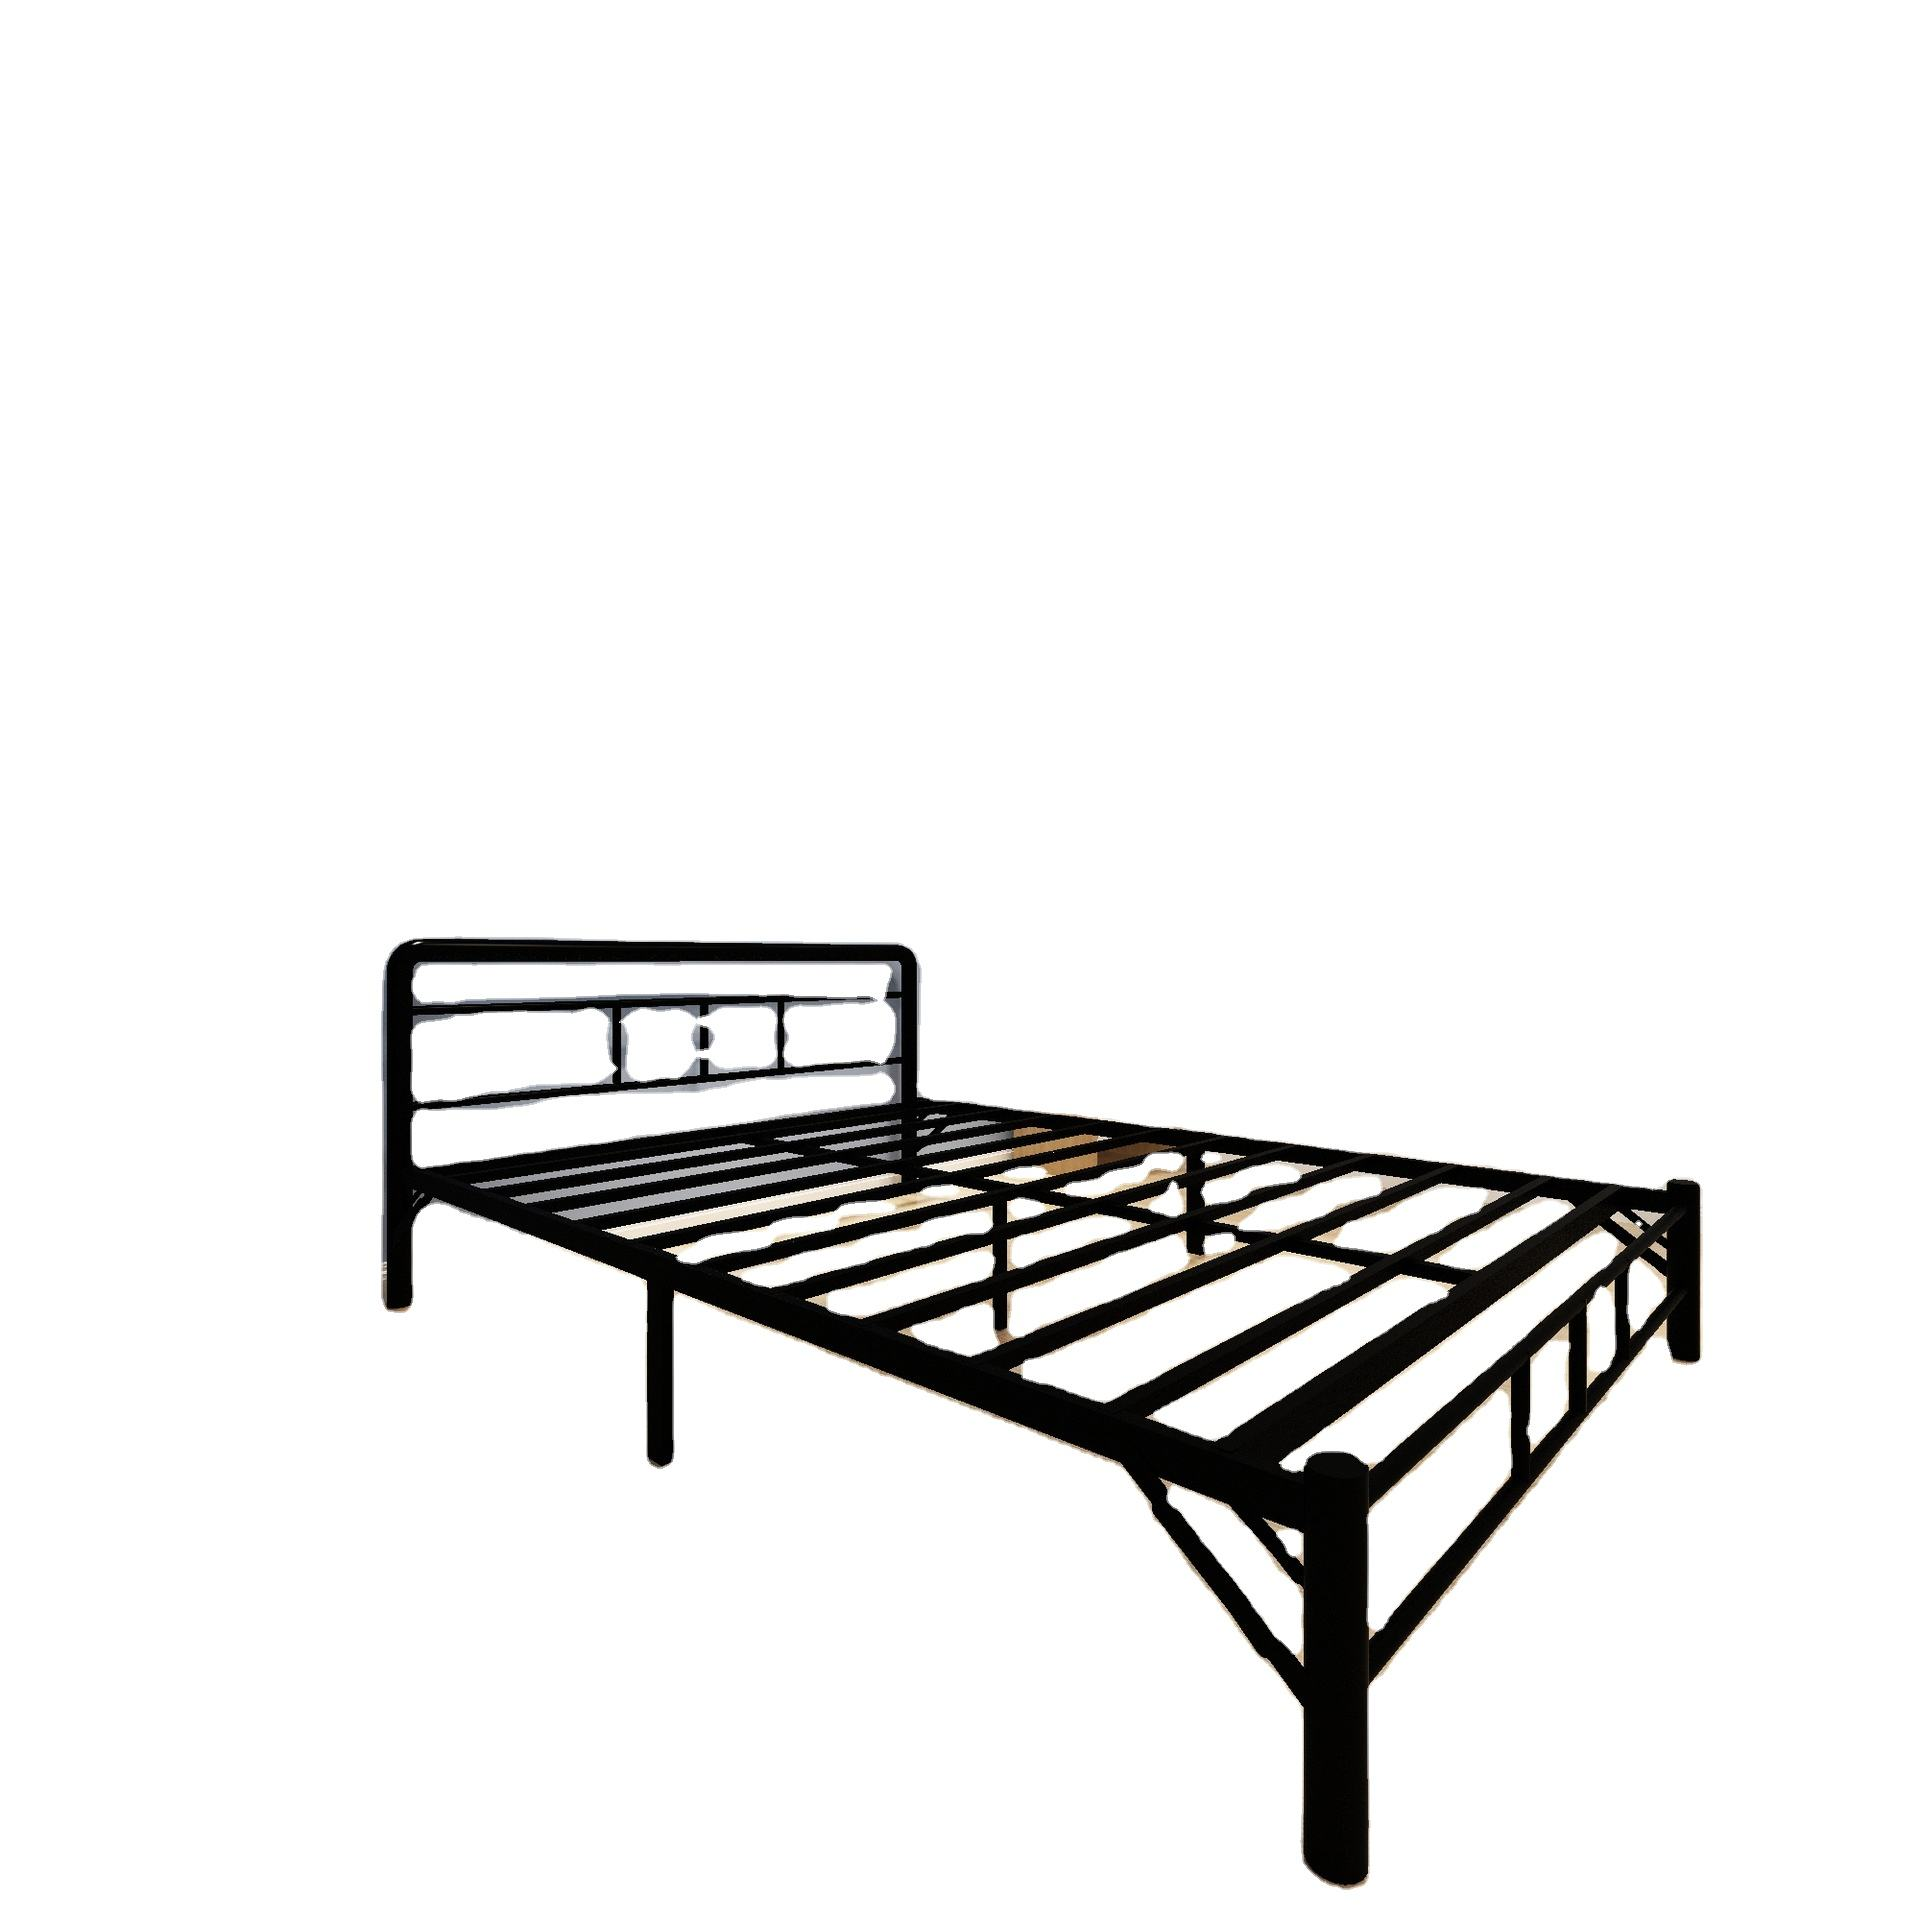 China Modern Iron Bed China Modern Iron Bed Manufacturers And Suppliers On Alibaba Com